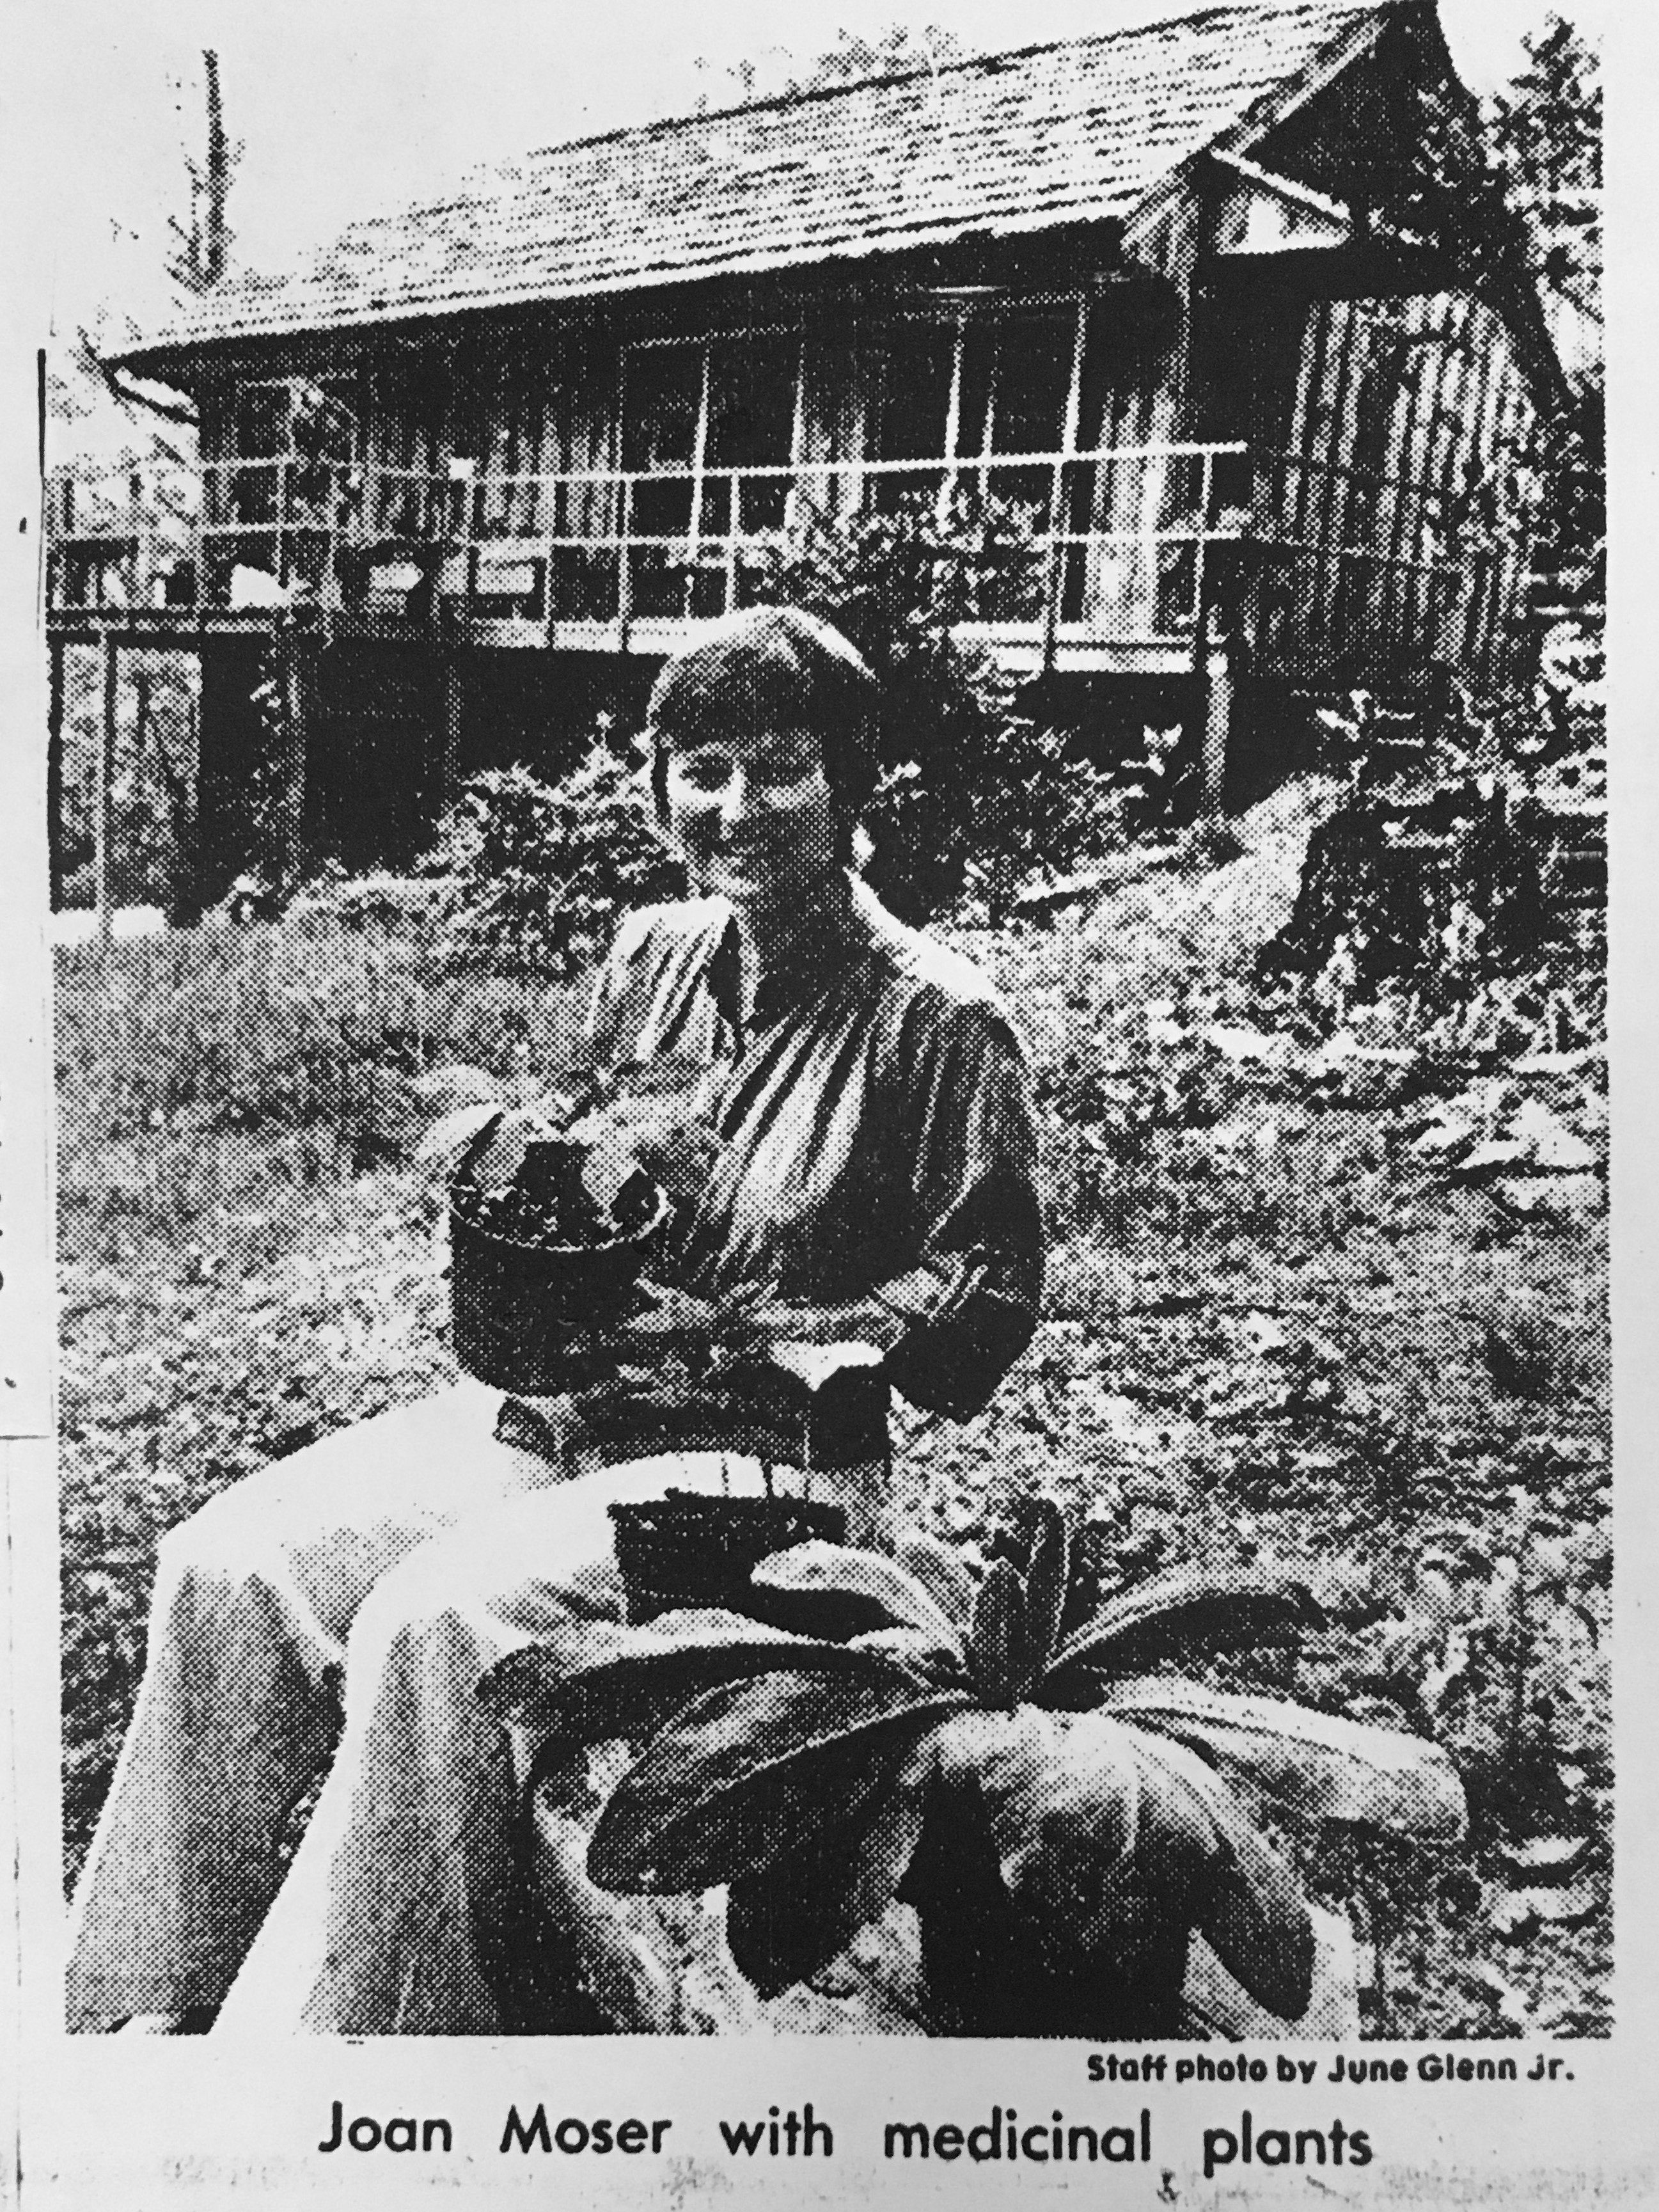 newspaper clipping of Joan Moser holding a medicinal plant